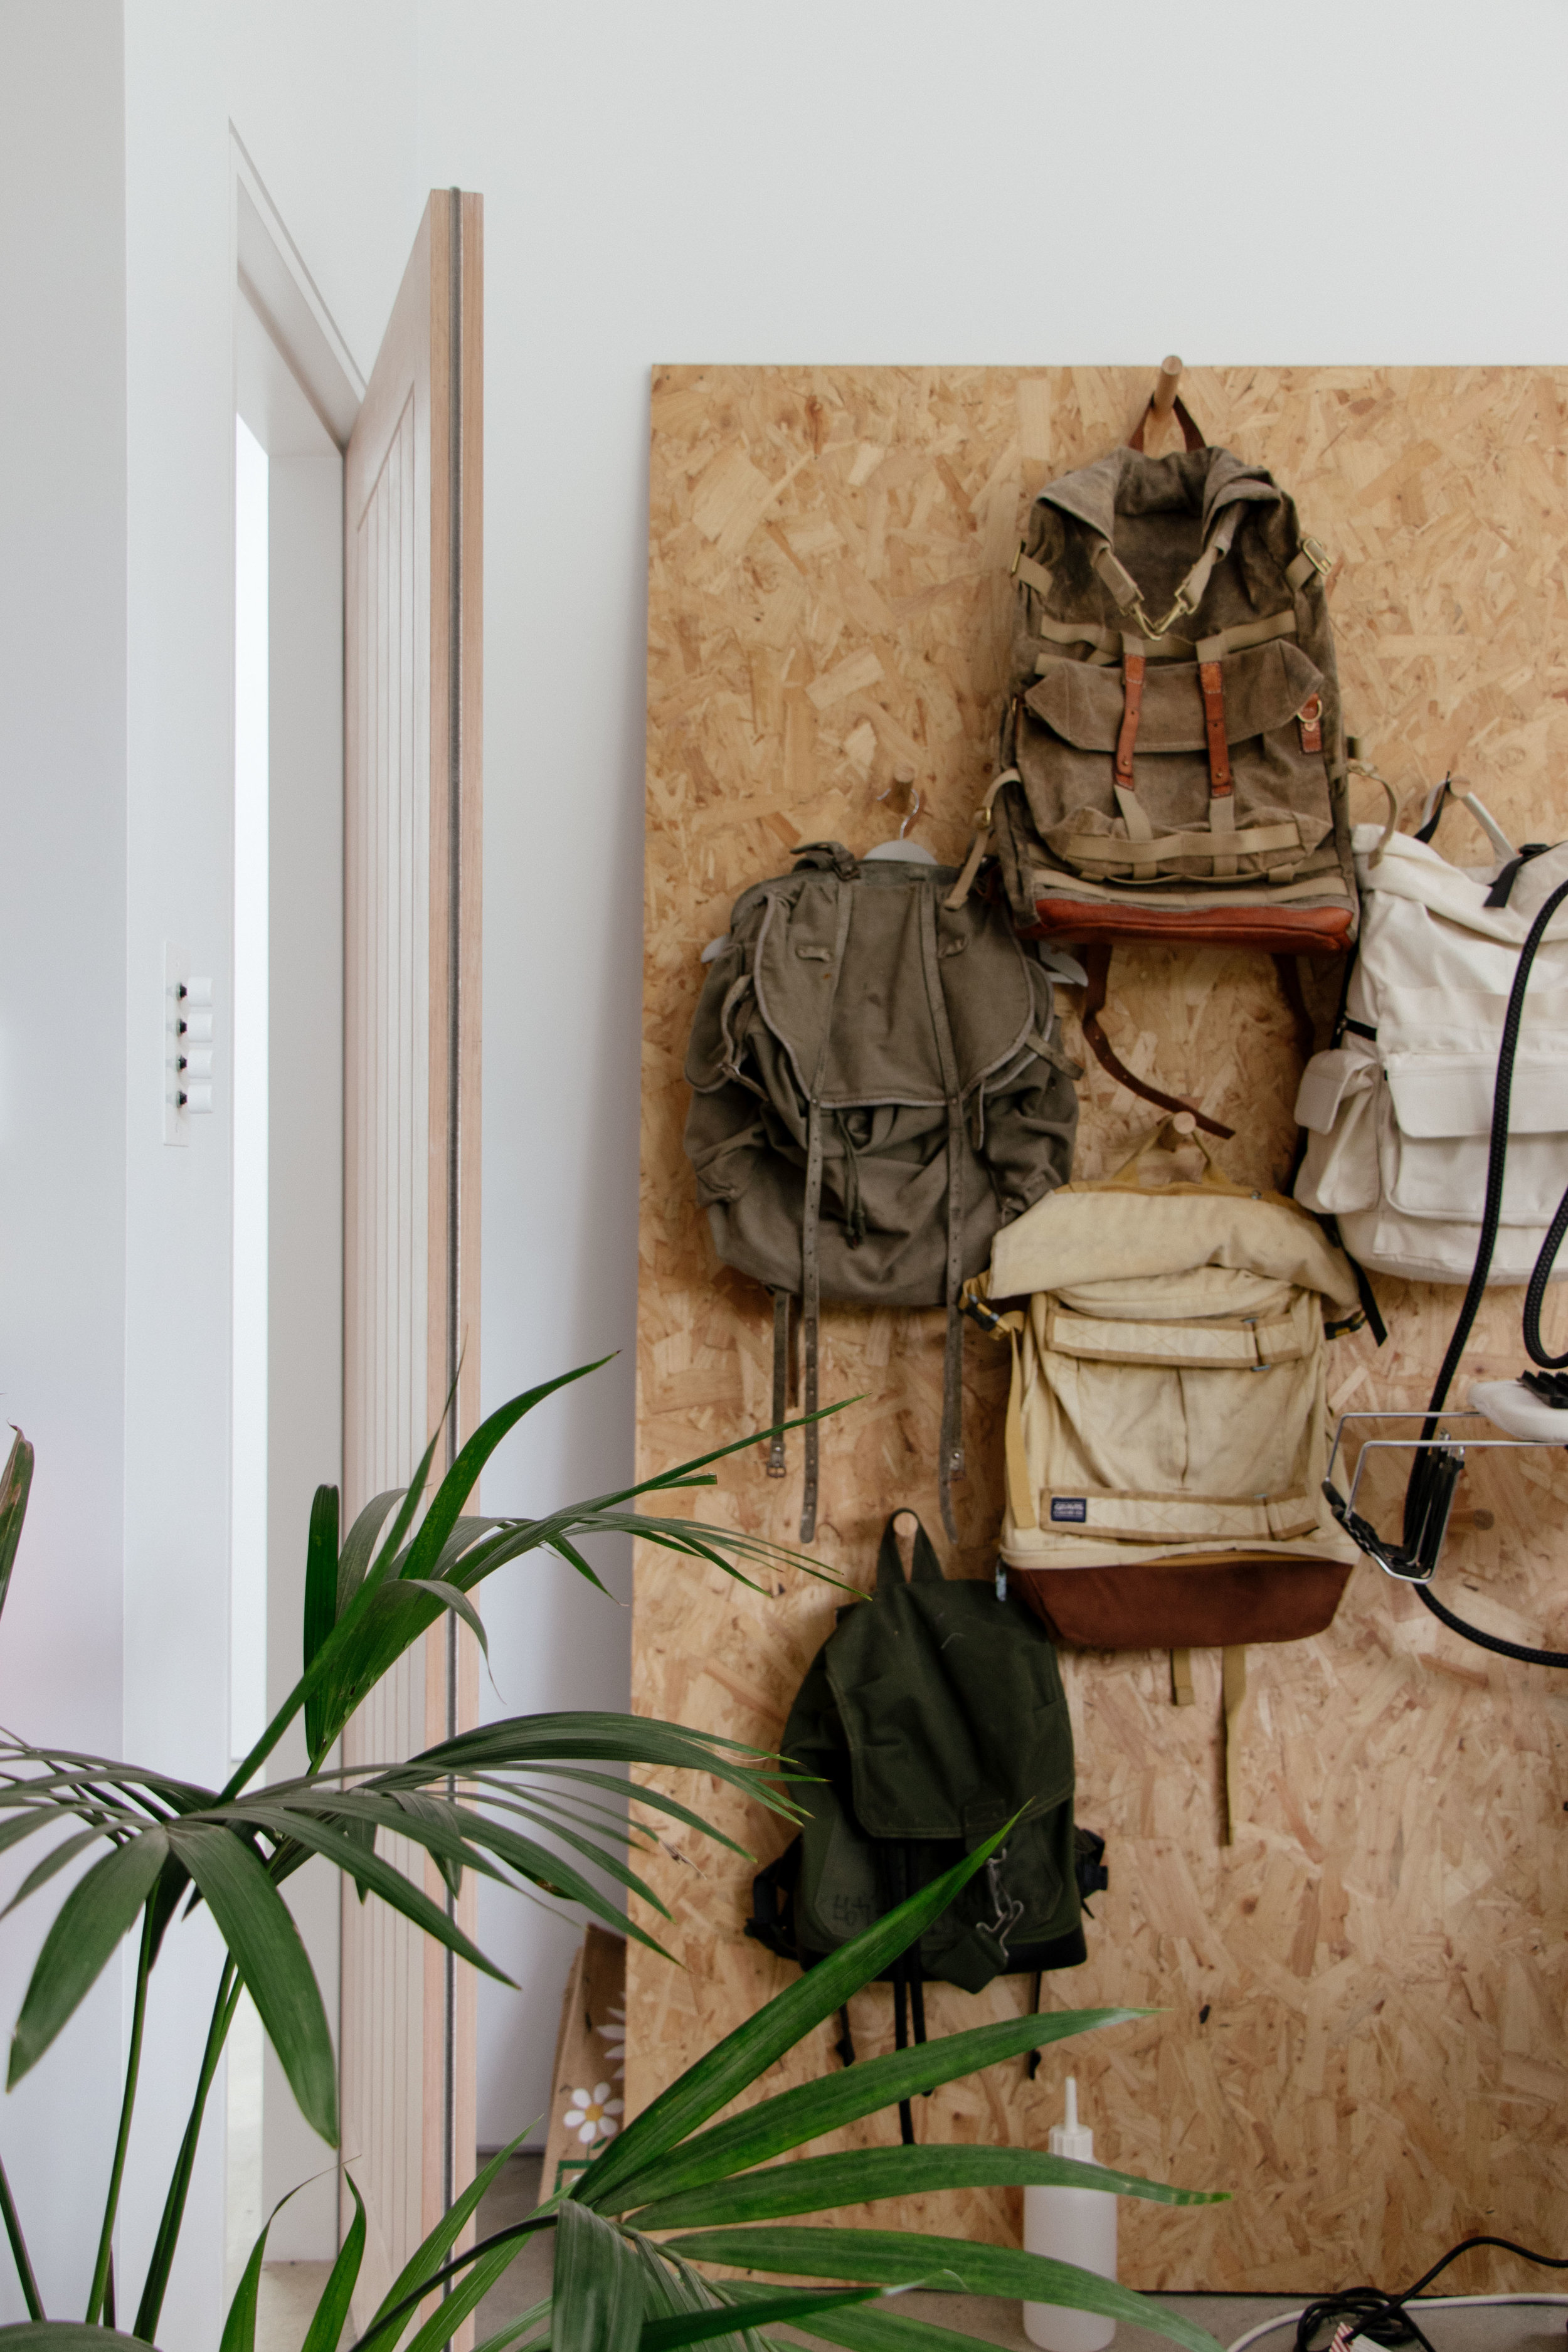 Francli Craftwear's collection of vintage and prototype rucksacks at Argal Home Farm.